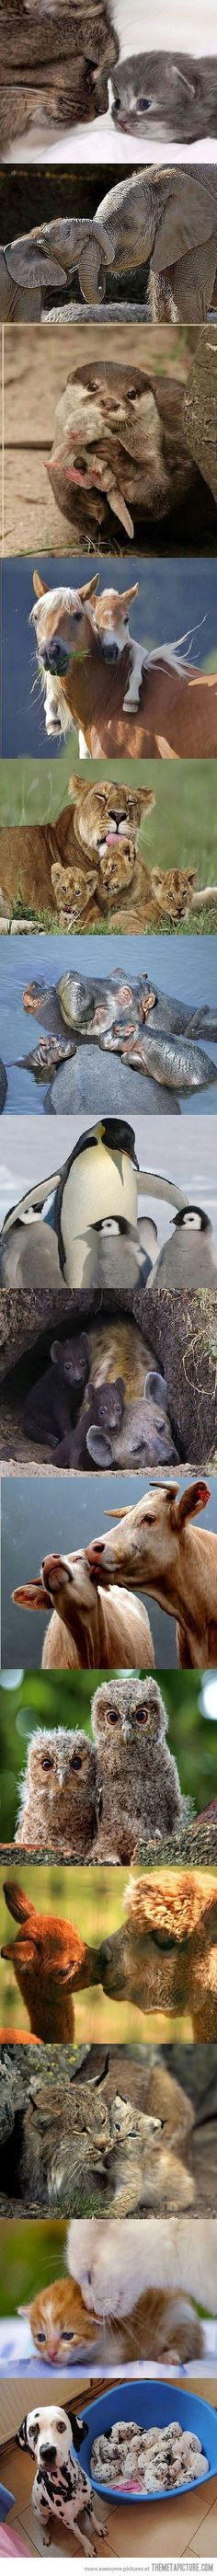 Baby animals and their moms!